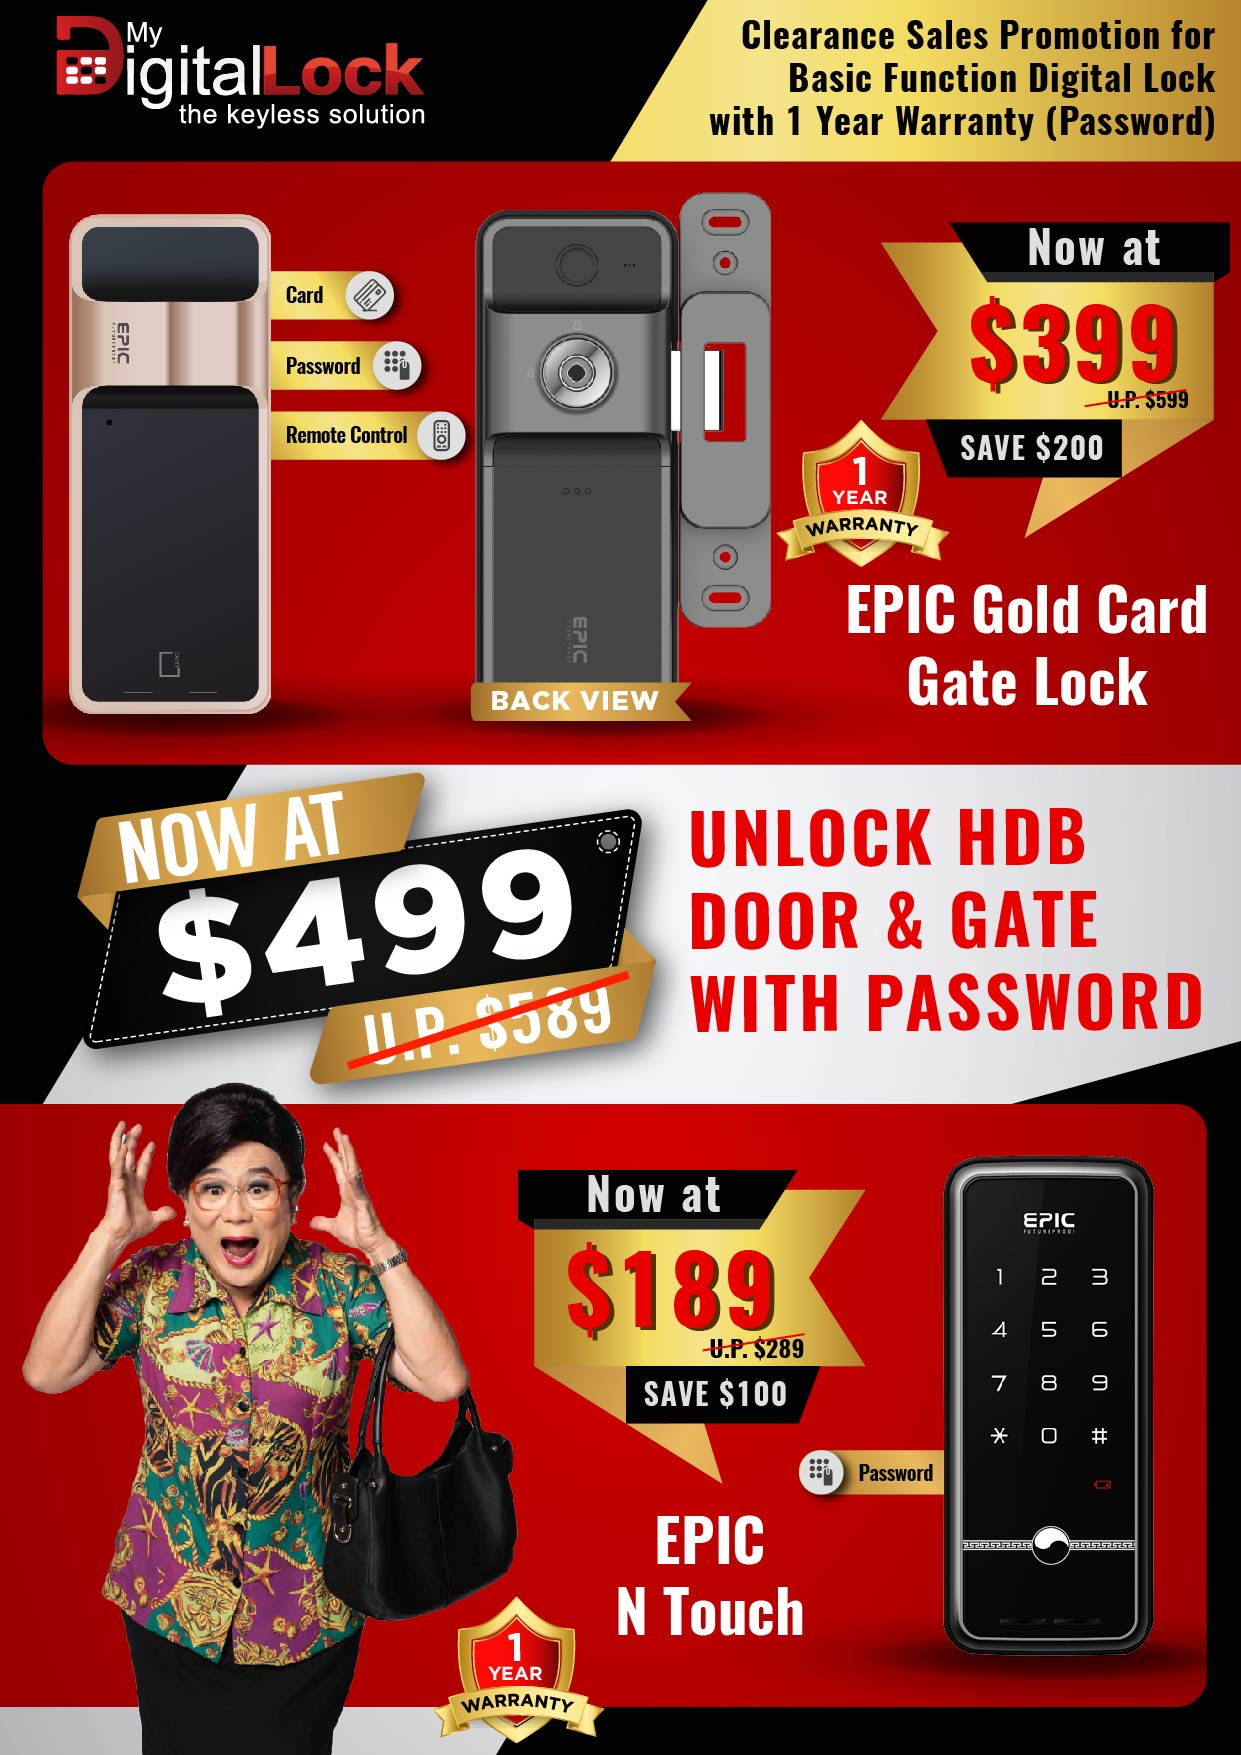 Basic Functionlity Digital Lock for HDB Door and Gate